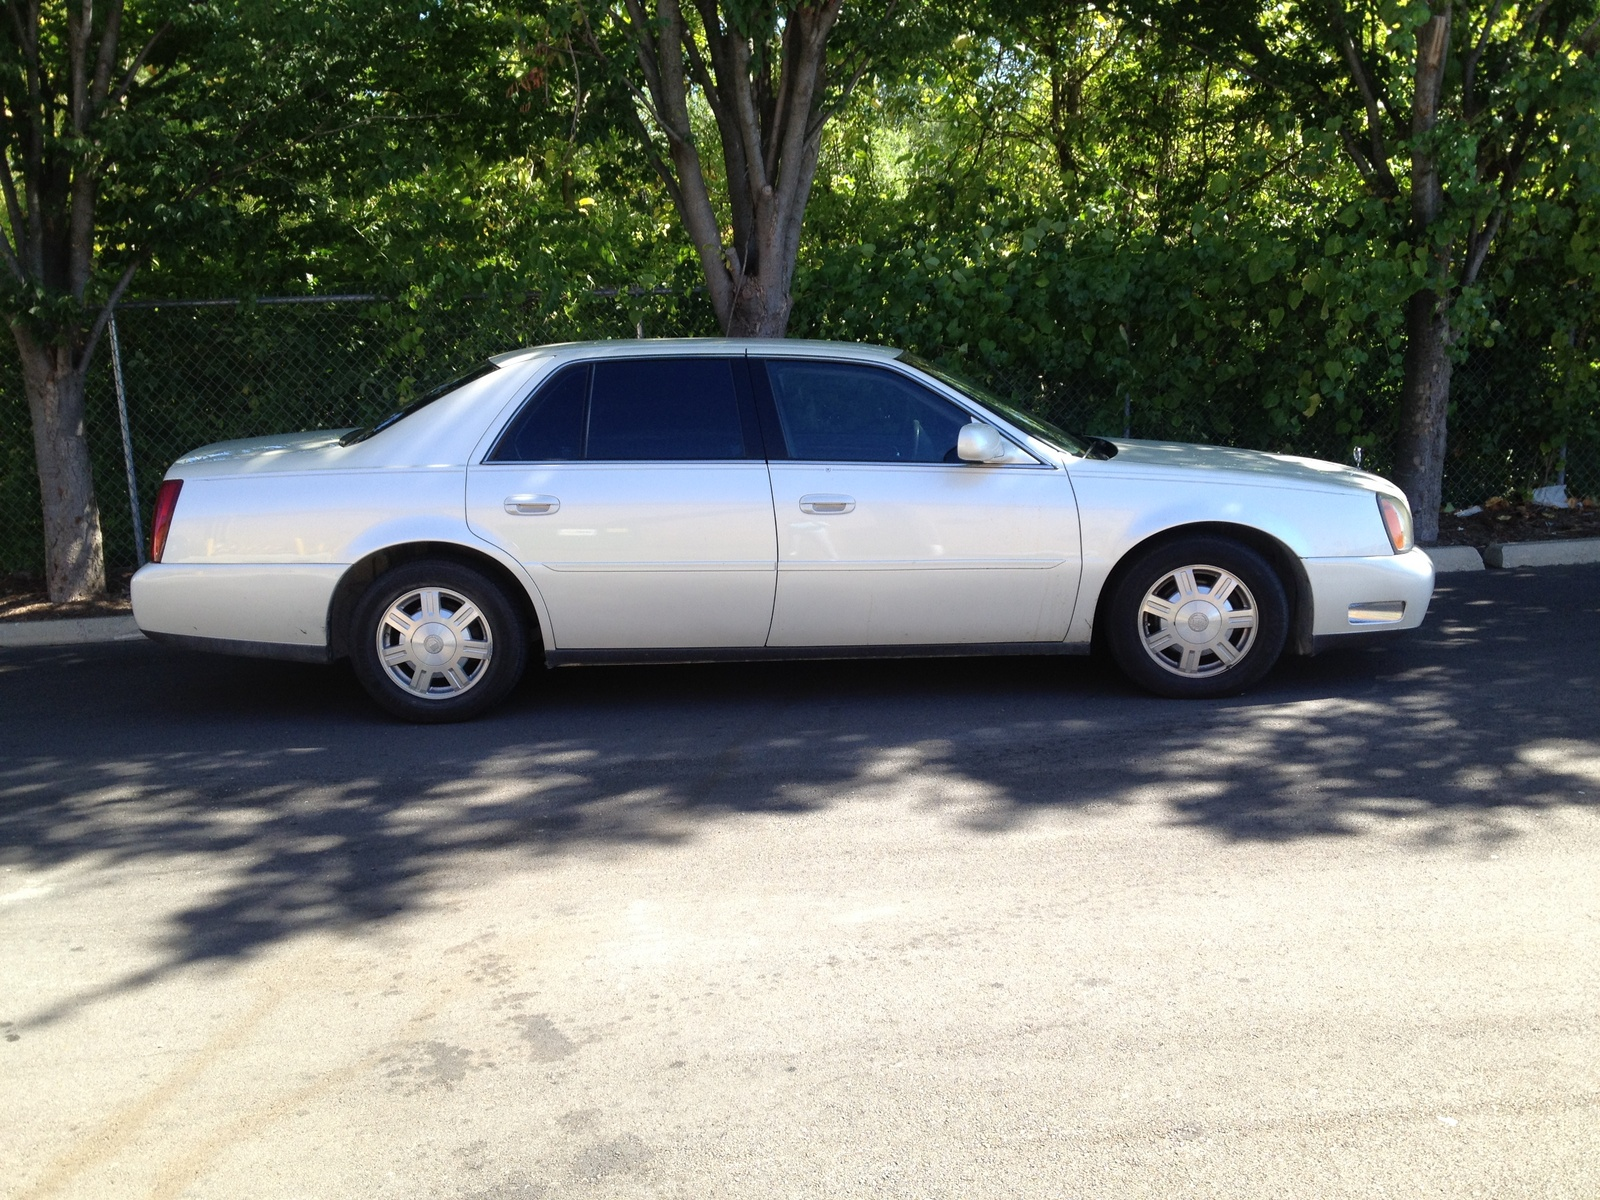 2003 cadillac deville exterior pictures cargurus. Cars Review. Best American Auto & Cars Review